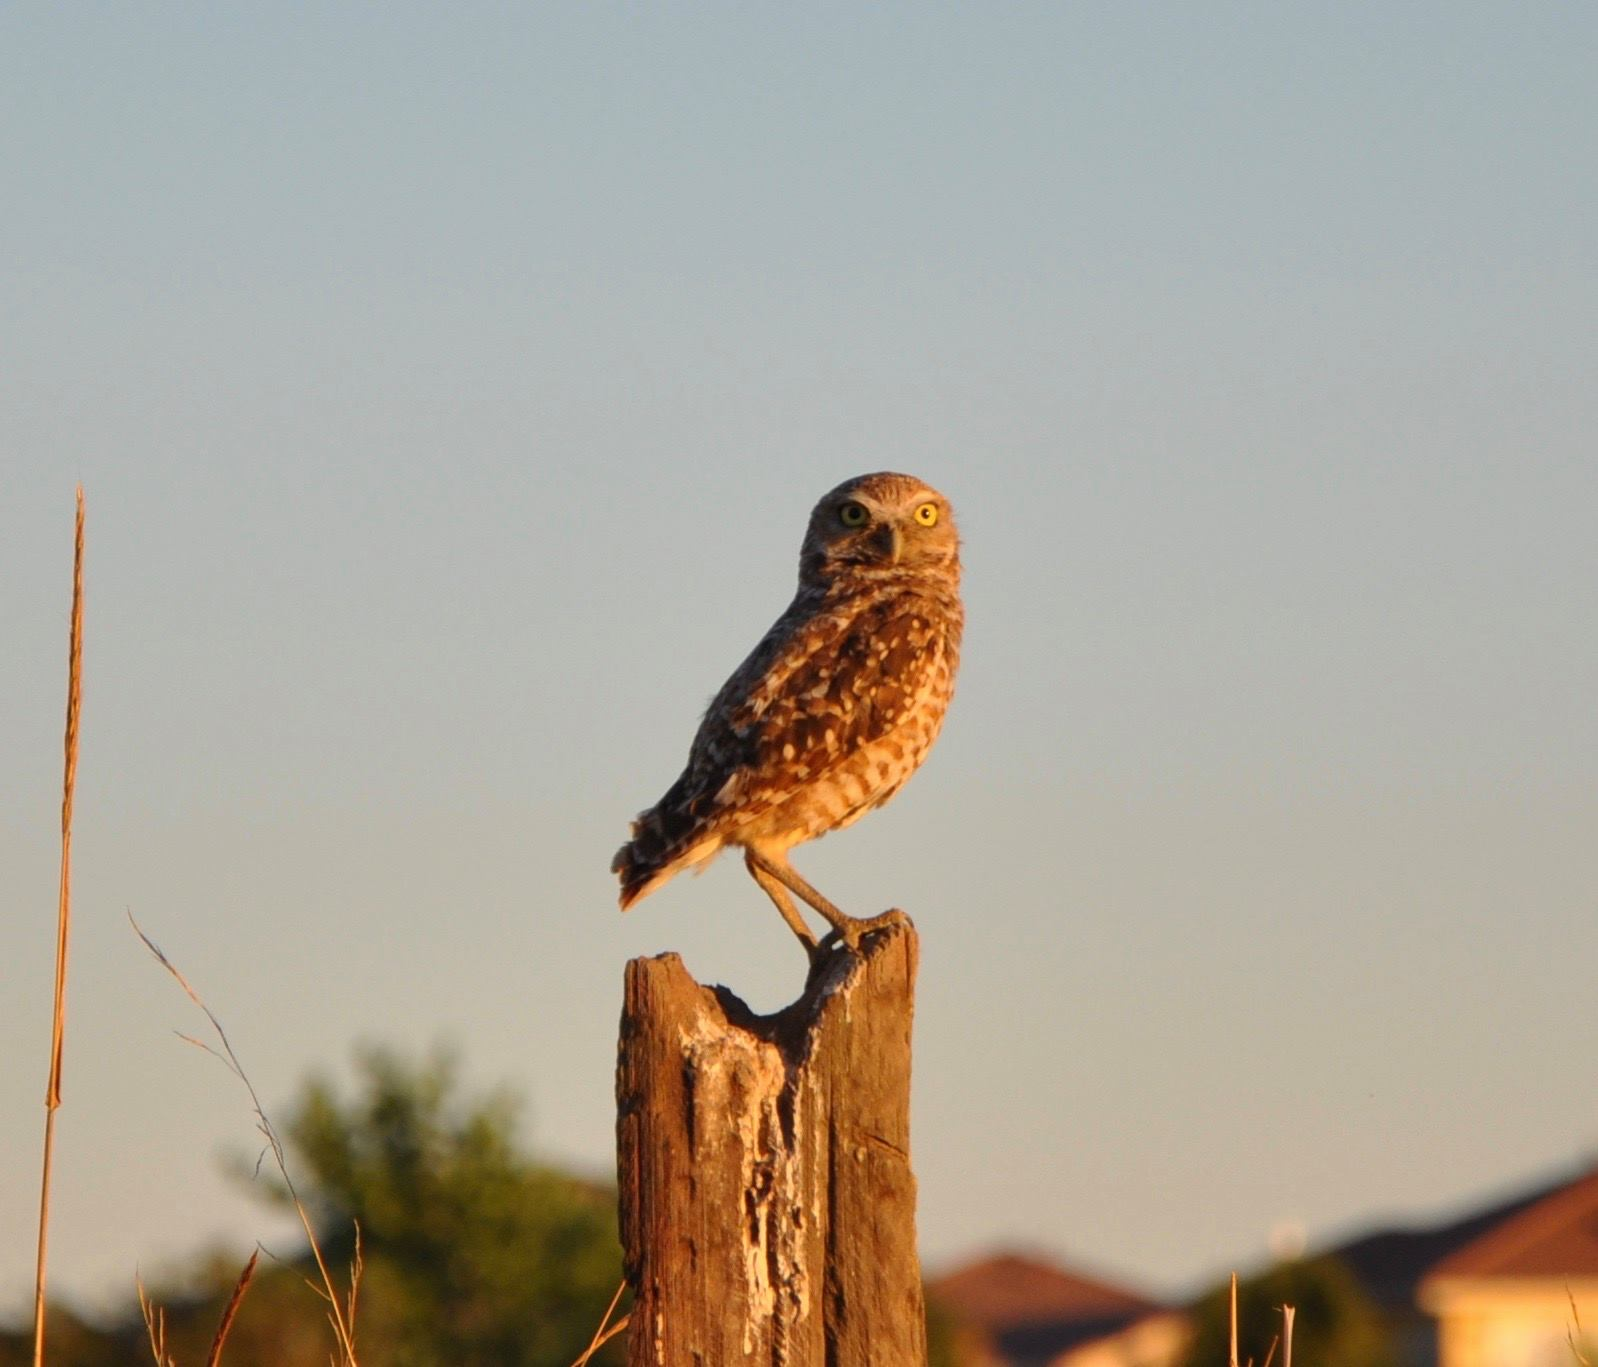 Today is #Superbowl vs #Superb_Owl challenge so posting some of my #Superb_Owls - here is #6 - burrowing owl in #DavisCA https://t.co/FlJFFxO0uy